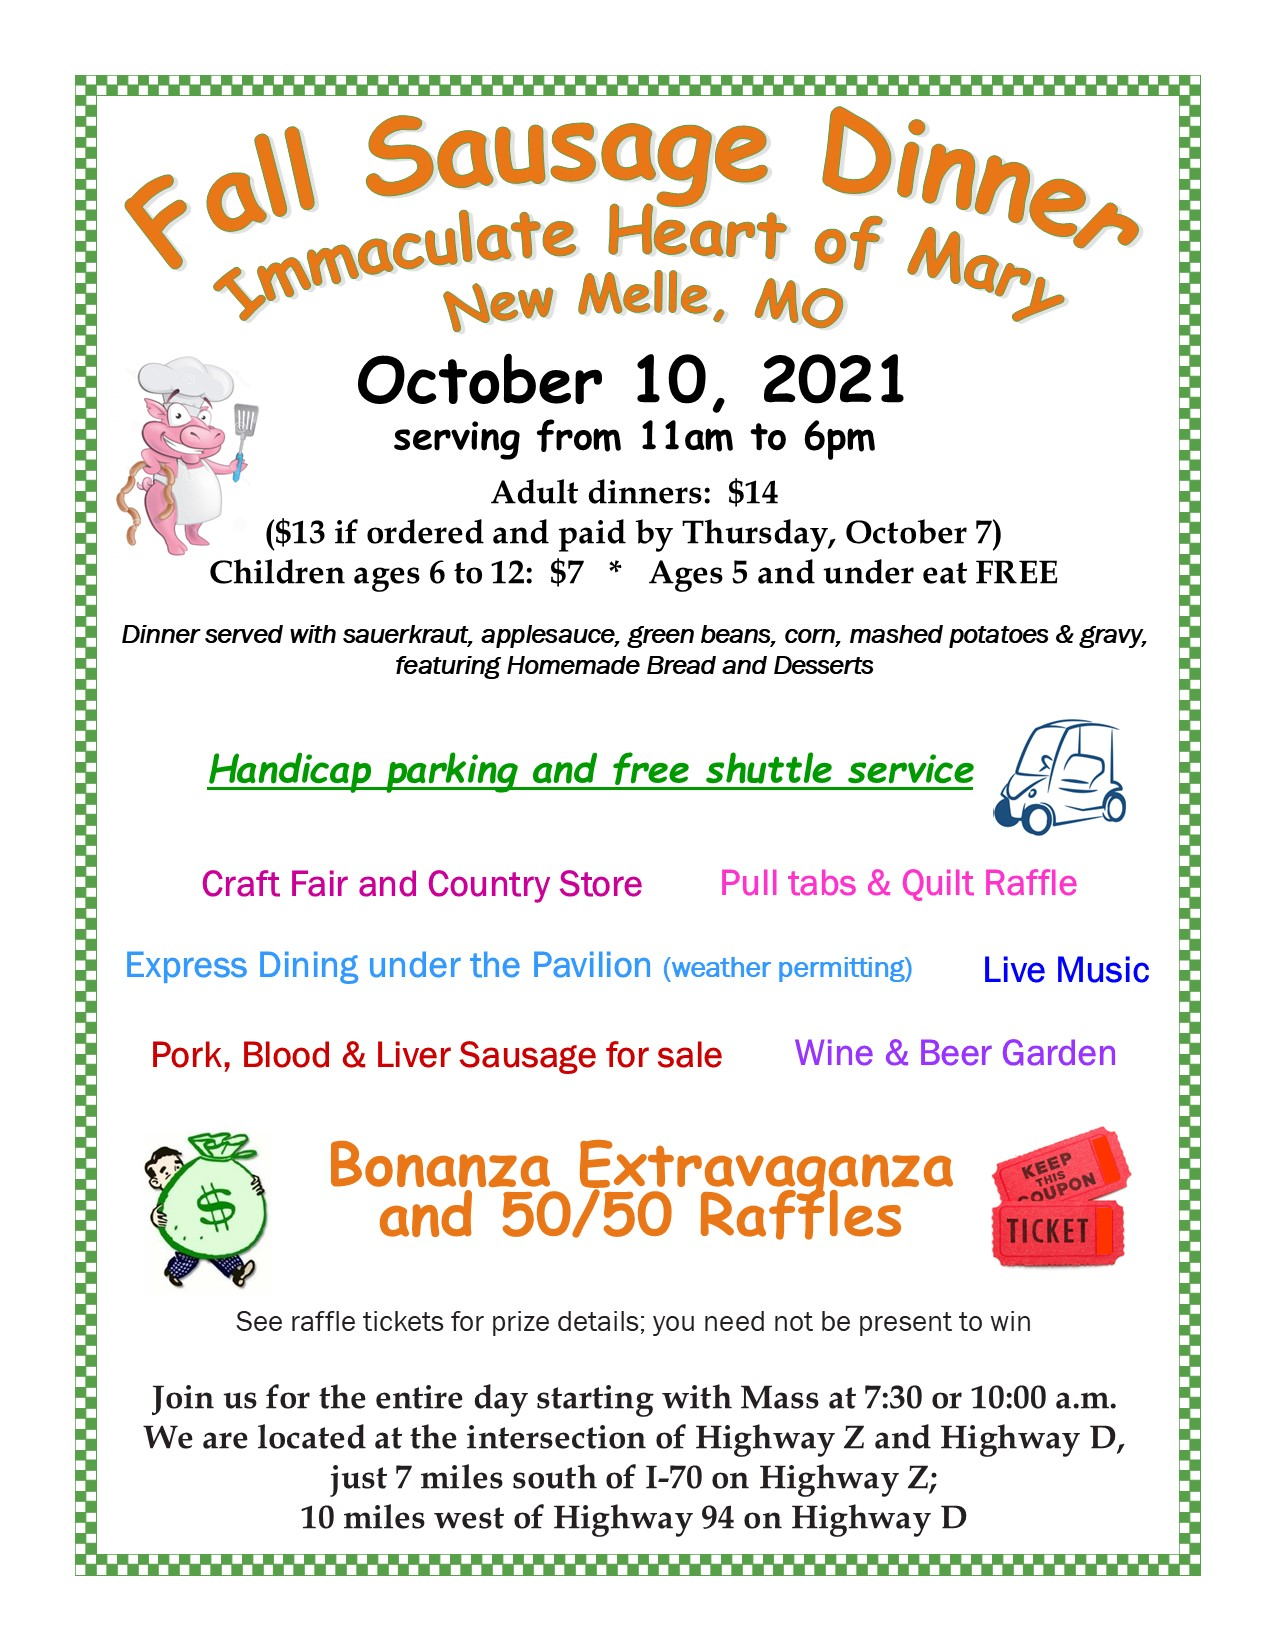 IHM, New Melle, Fall Sausage Dinner Flyer